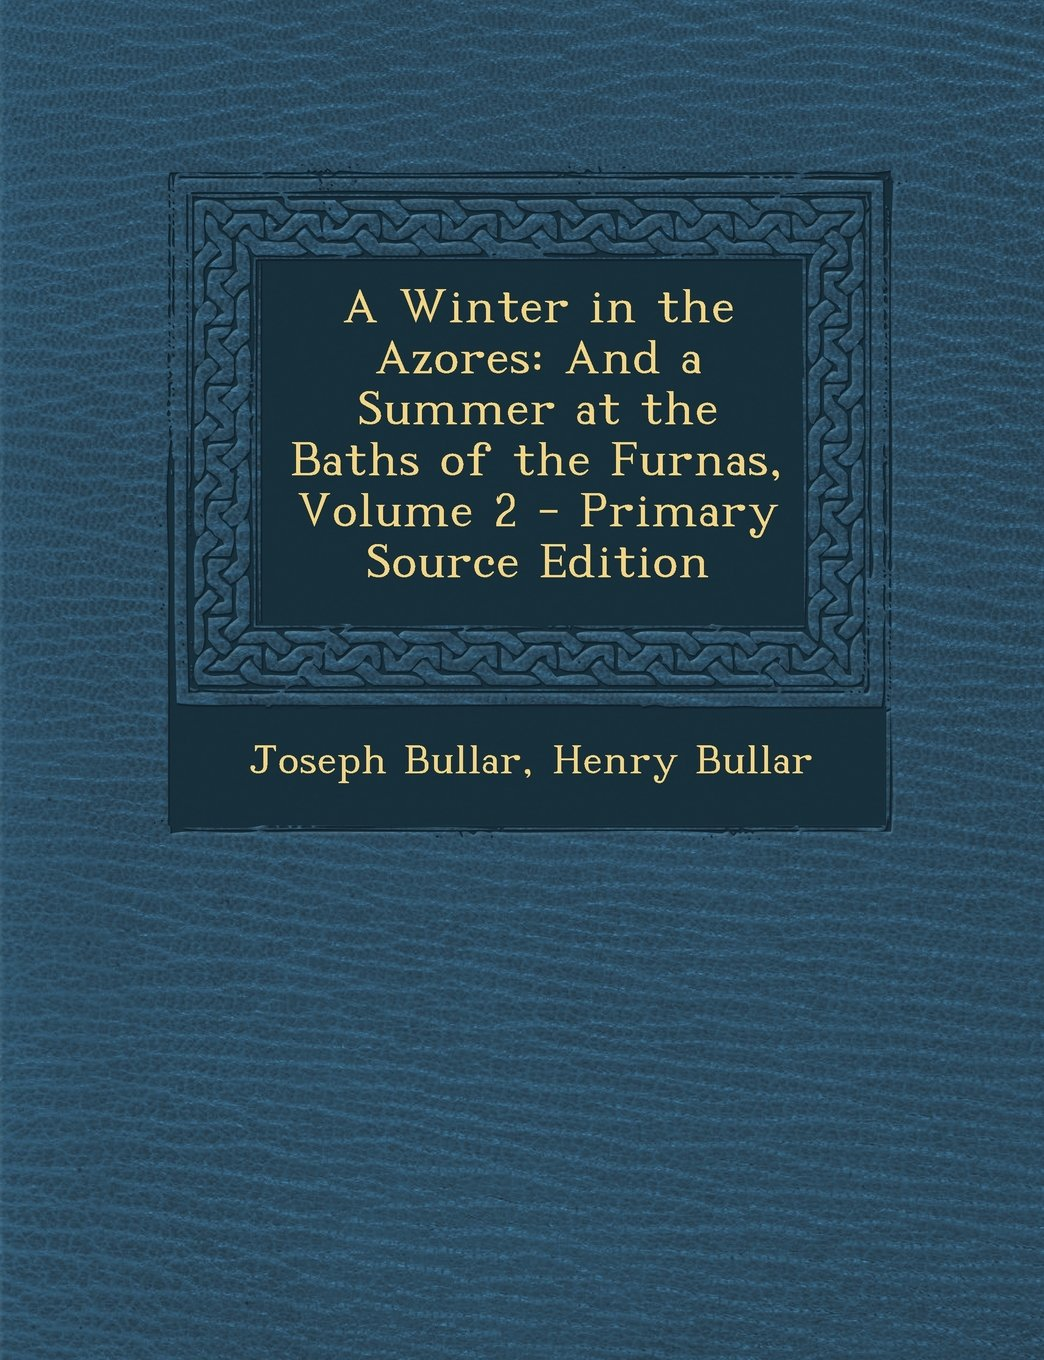 A Winter in the Azores: And a Summer at the Baths of the Furnas, Volume 2 - Primary Source Edition PDF